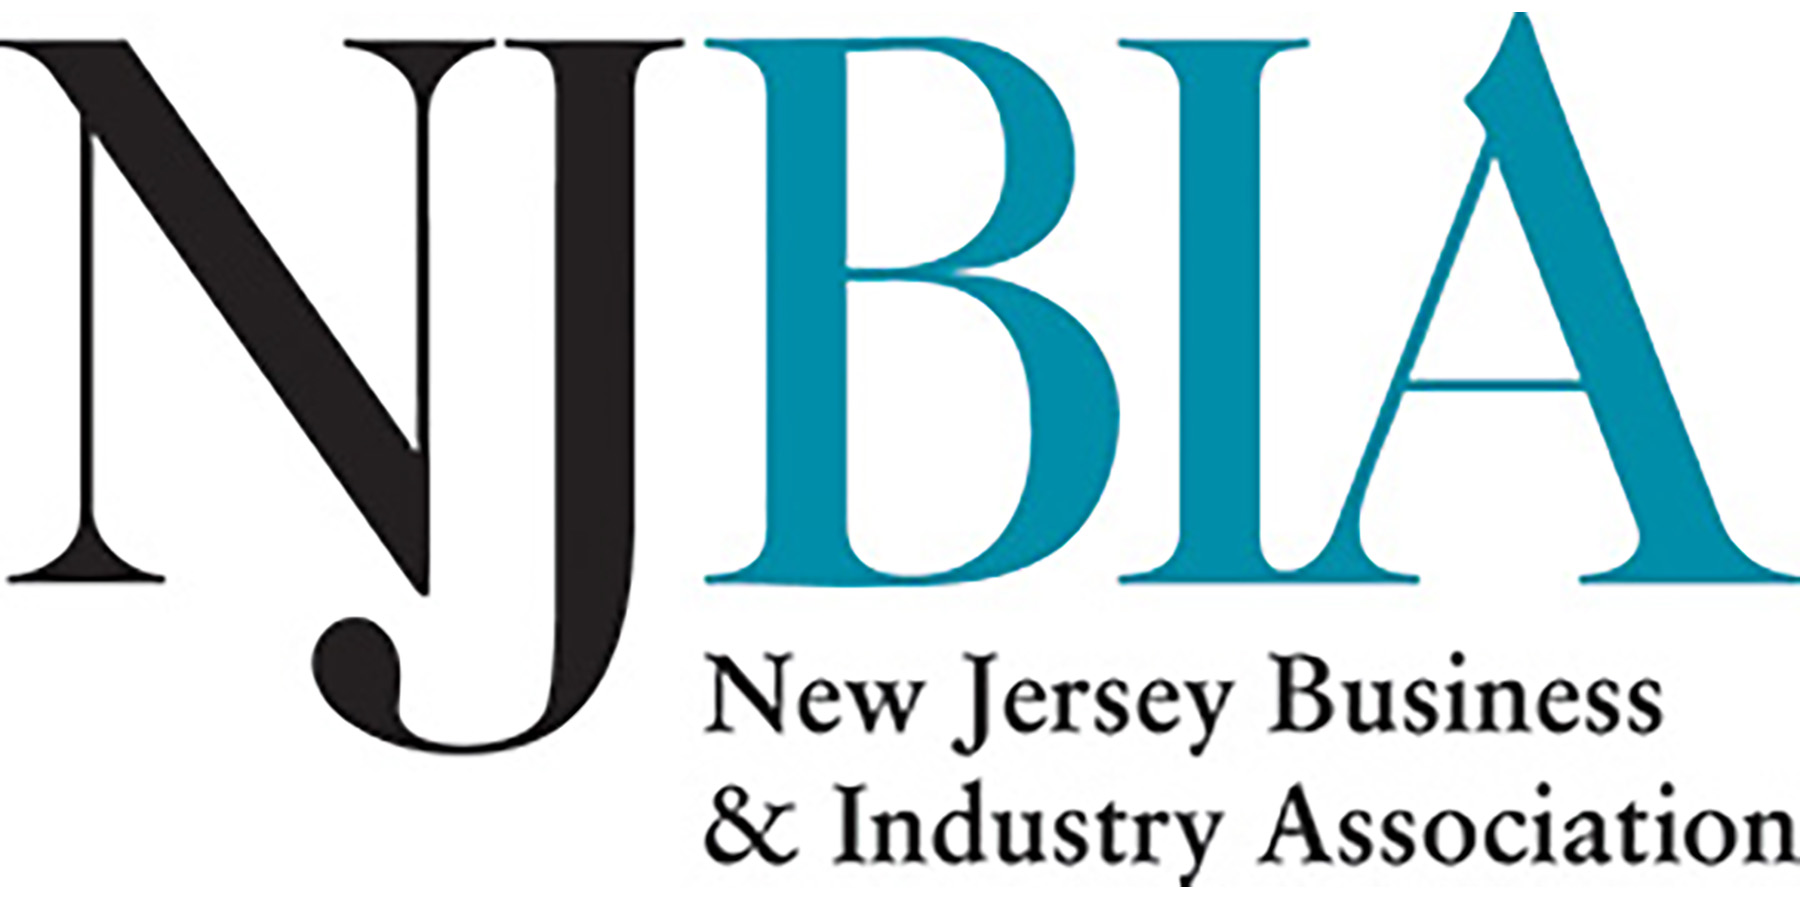 New Jersey Business & Industry Associati